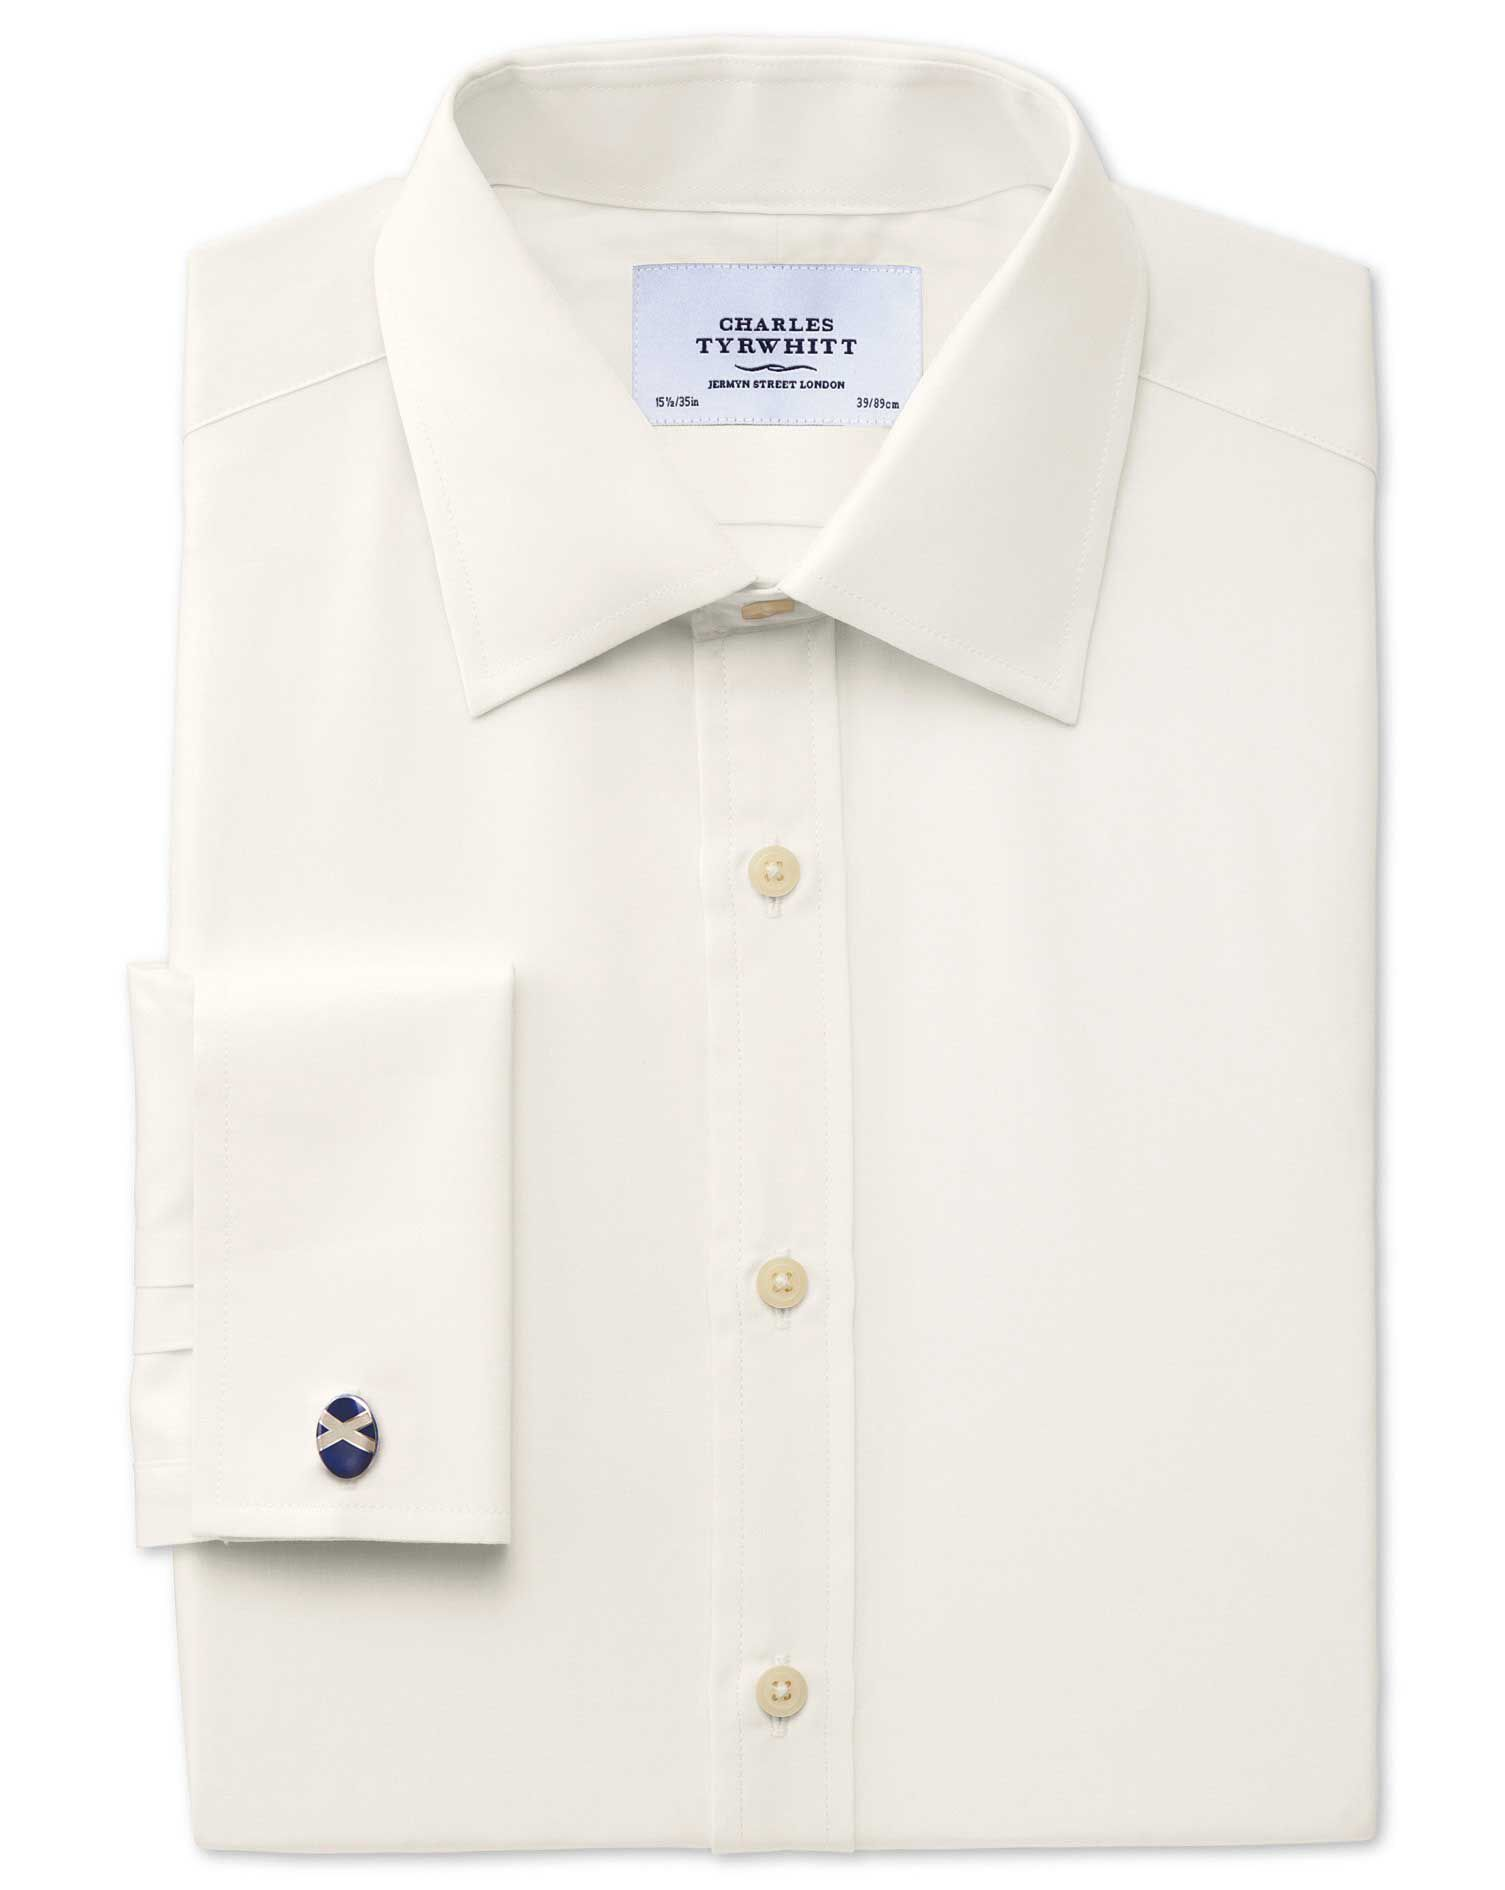 Extra Slim Fit End-On-End Cream Cotton Formal Shirt Single Cuff Size 16.5/38 by Charles Tyrwhitt